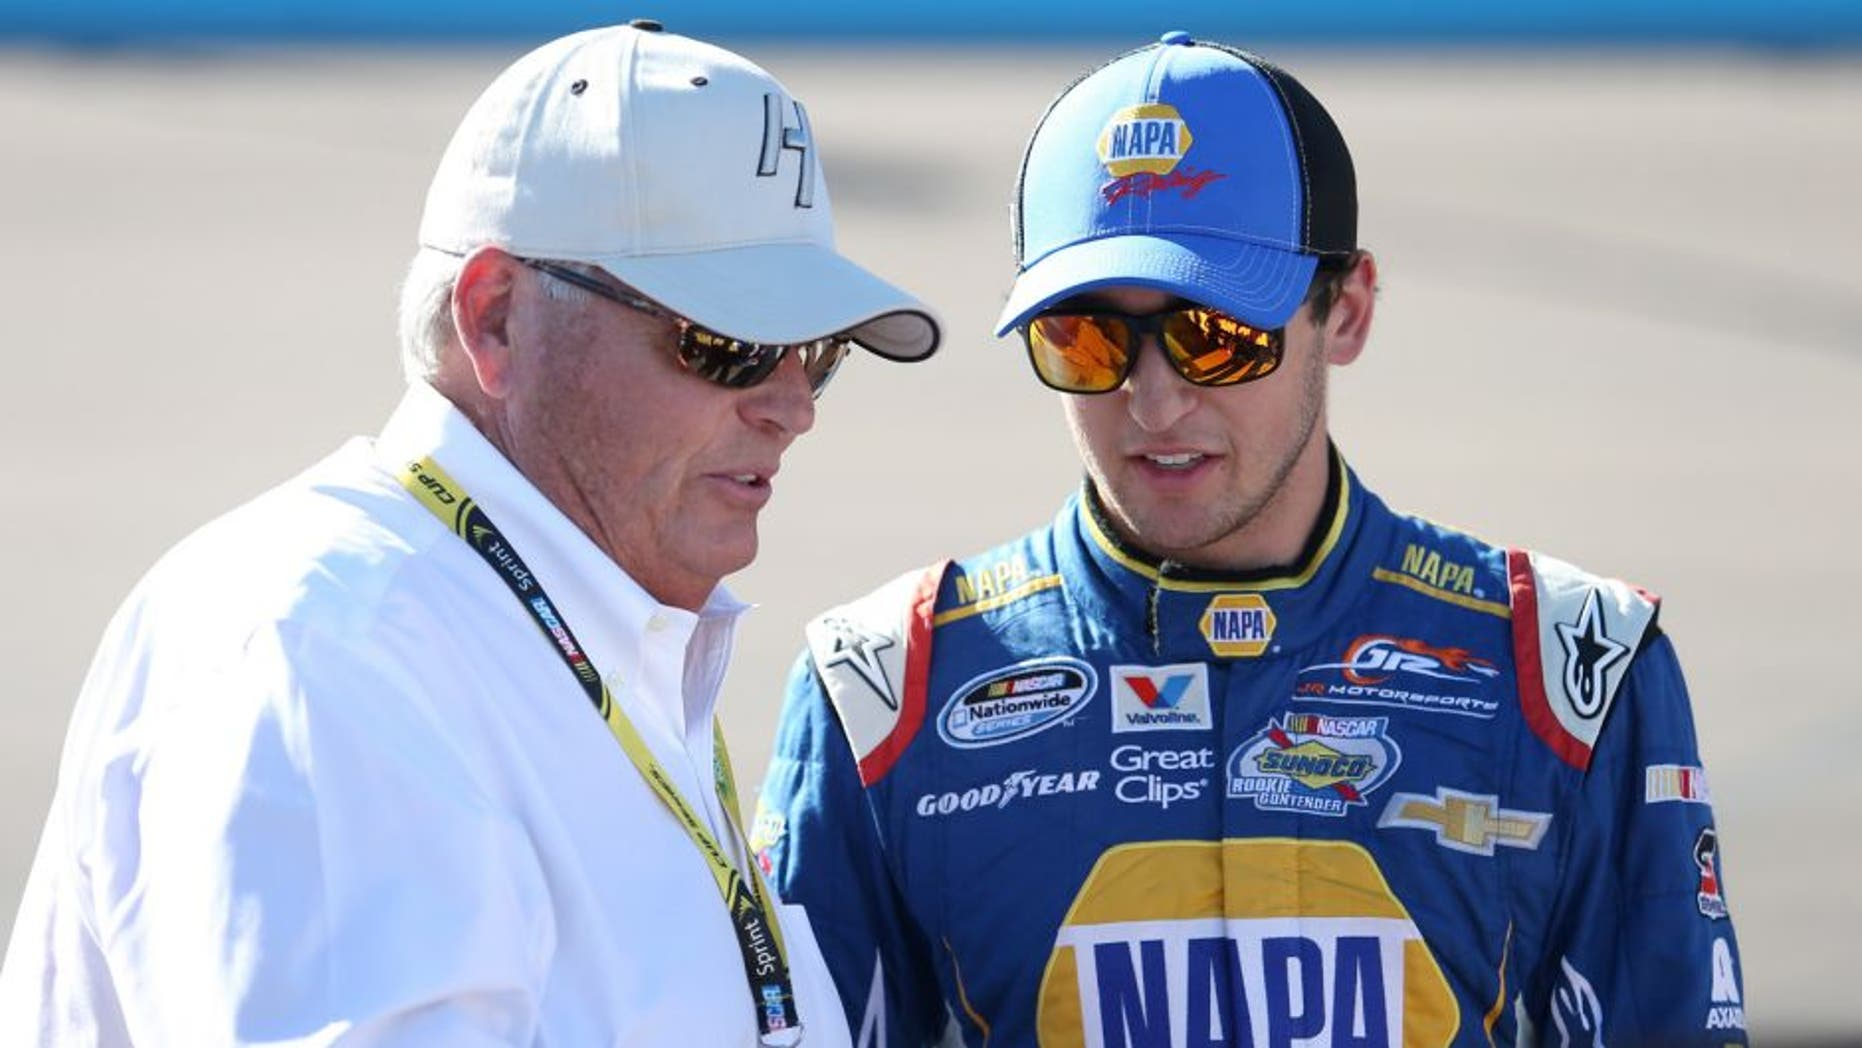 AVONDALE, AZ - NOVEMBER 08: Chase Elliott, driver of the #9 NAPA Auto Parts Chevrolet, stands on the grid with team owner Rick Hendrick prior to the NASCAR Nationwide Series DAV 200 at Phoenix International Raceway on November 8, 2014 in Avondale, Arizona. (Photo by Todd Warshaw/Getty Images)